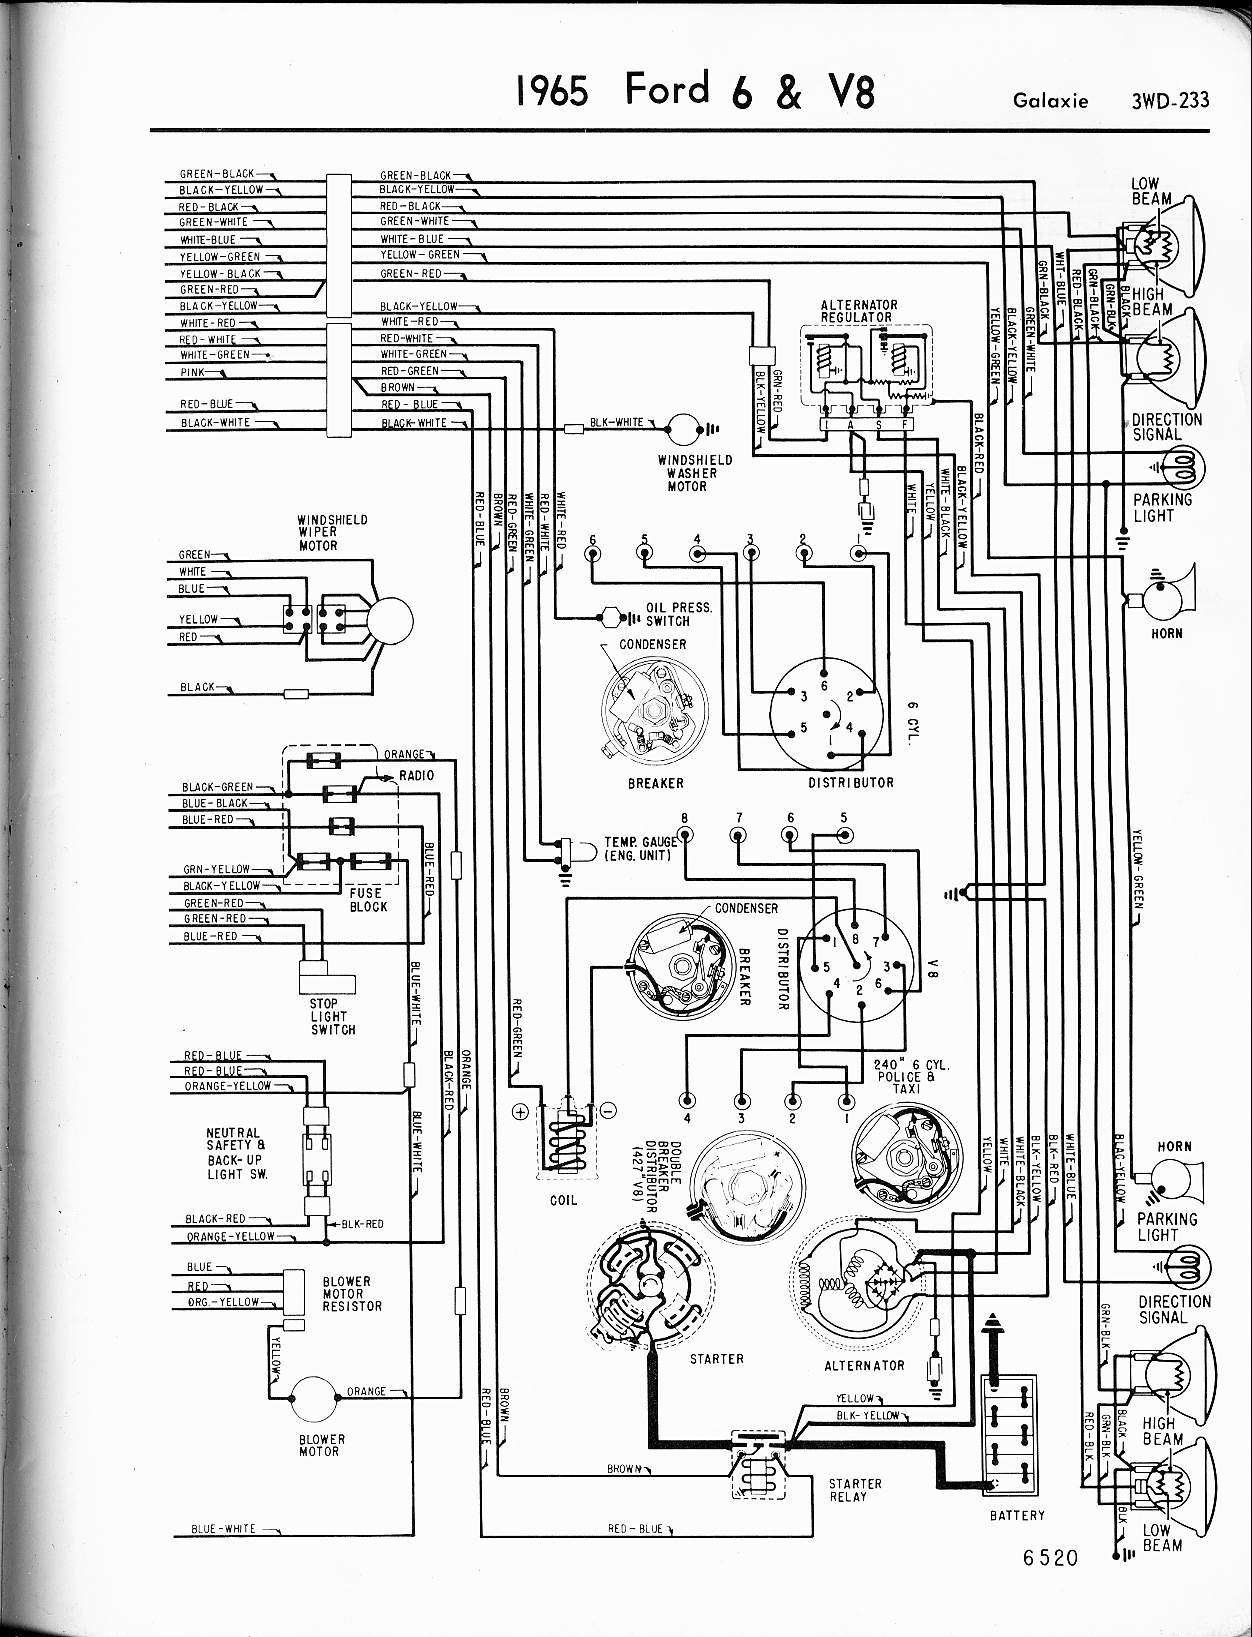 Catalog3 moreover Elec furthermore 72 Chevy Starter Wiring Diagram Truckforum Org Forums additionally 18085 Exploded View Of 60 66 Chevy Truck Steering Column in addition Chevrolet S 10 2 2 1992 Specs And Images. on 1966 chevy impala wiring diagram